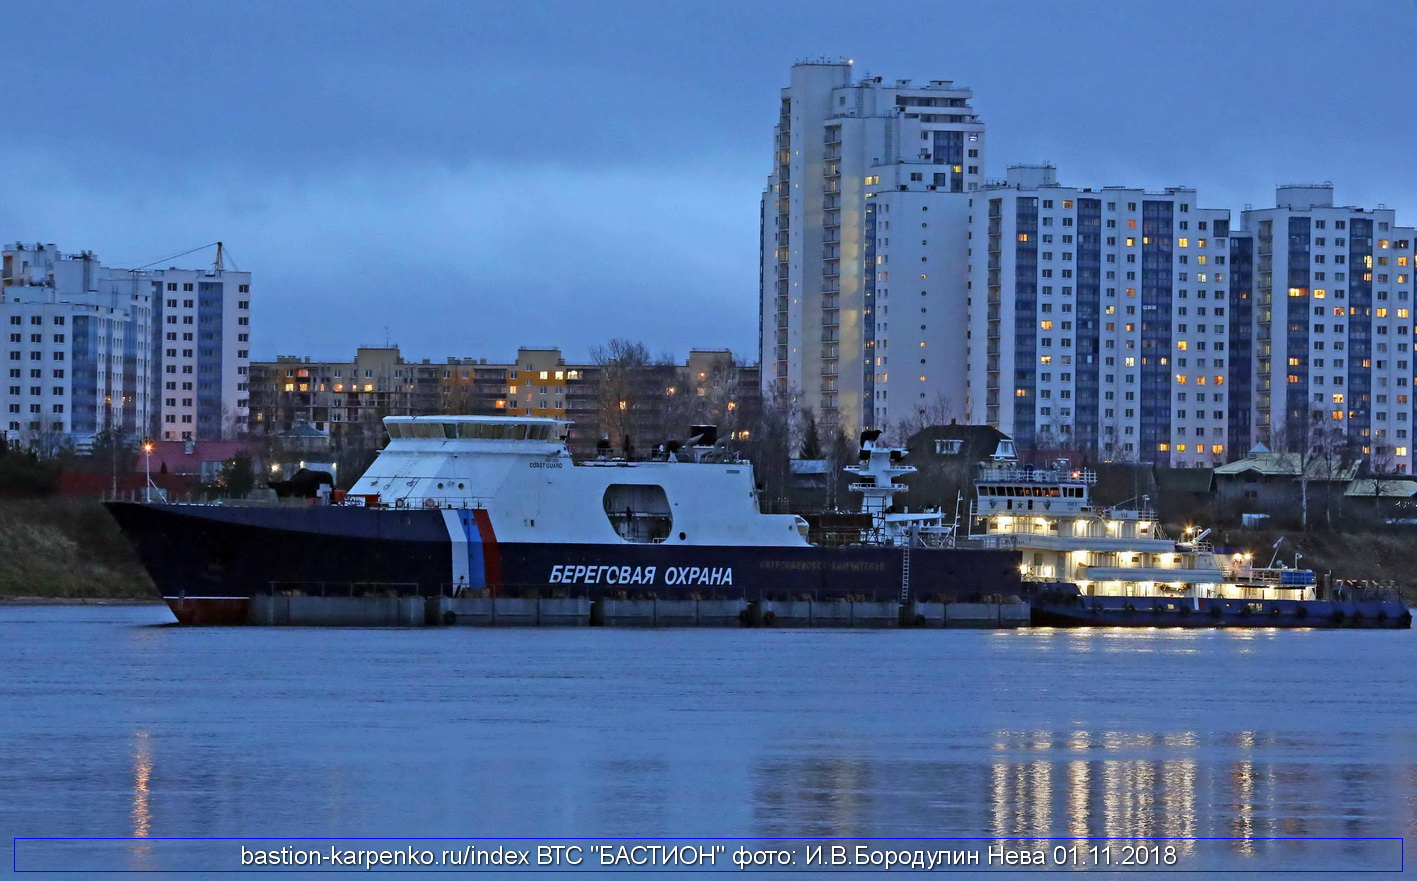 Russian Naval Construction Plans and Update - Page 14 22100_PETROPAVLOVSK_181101_03